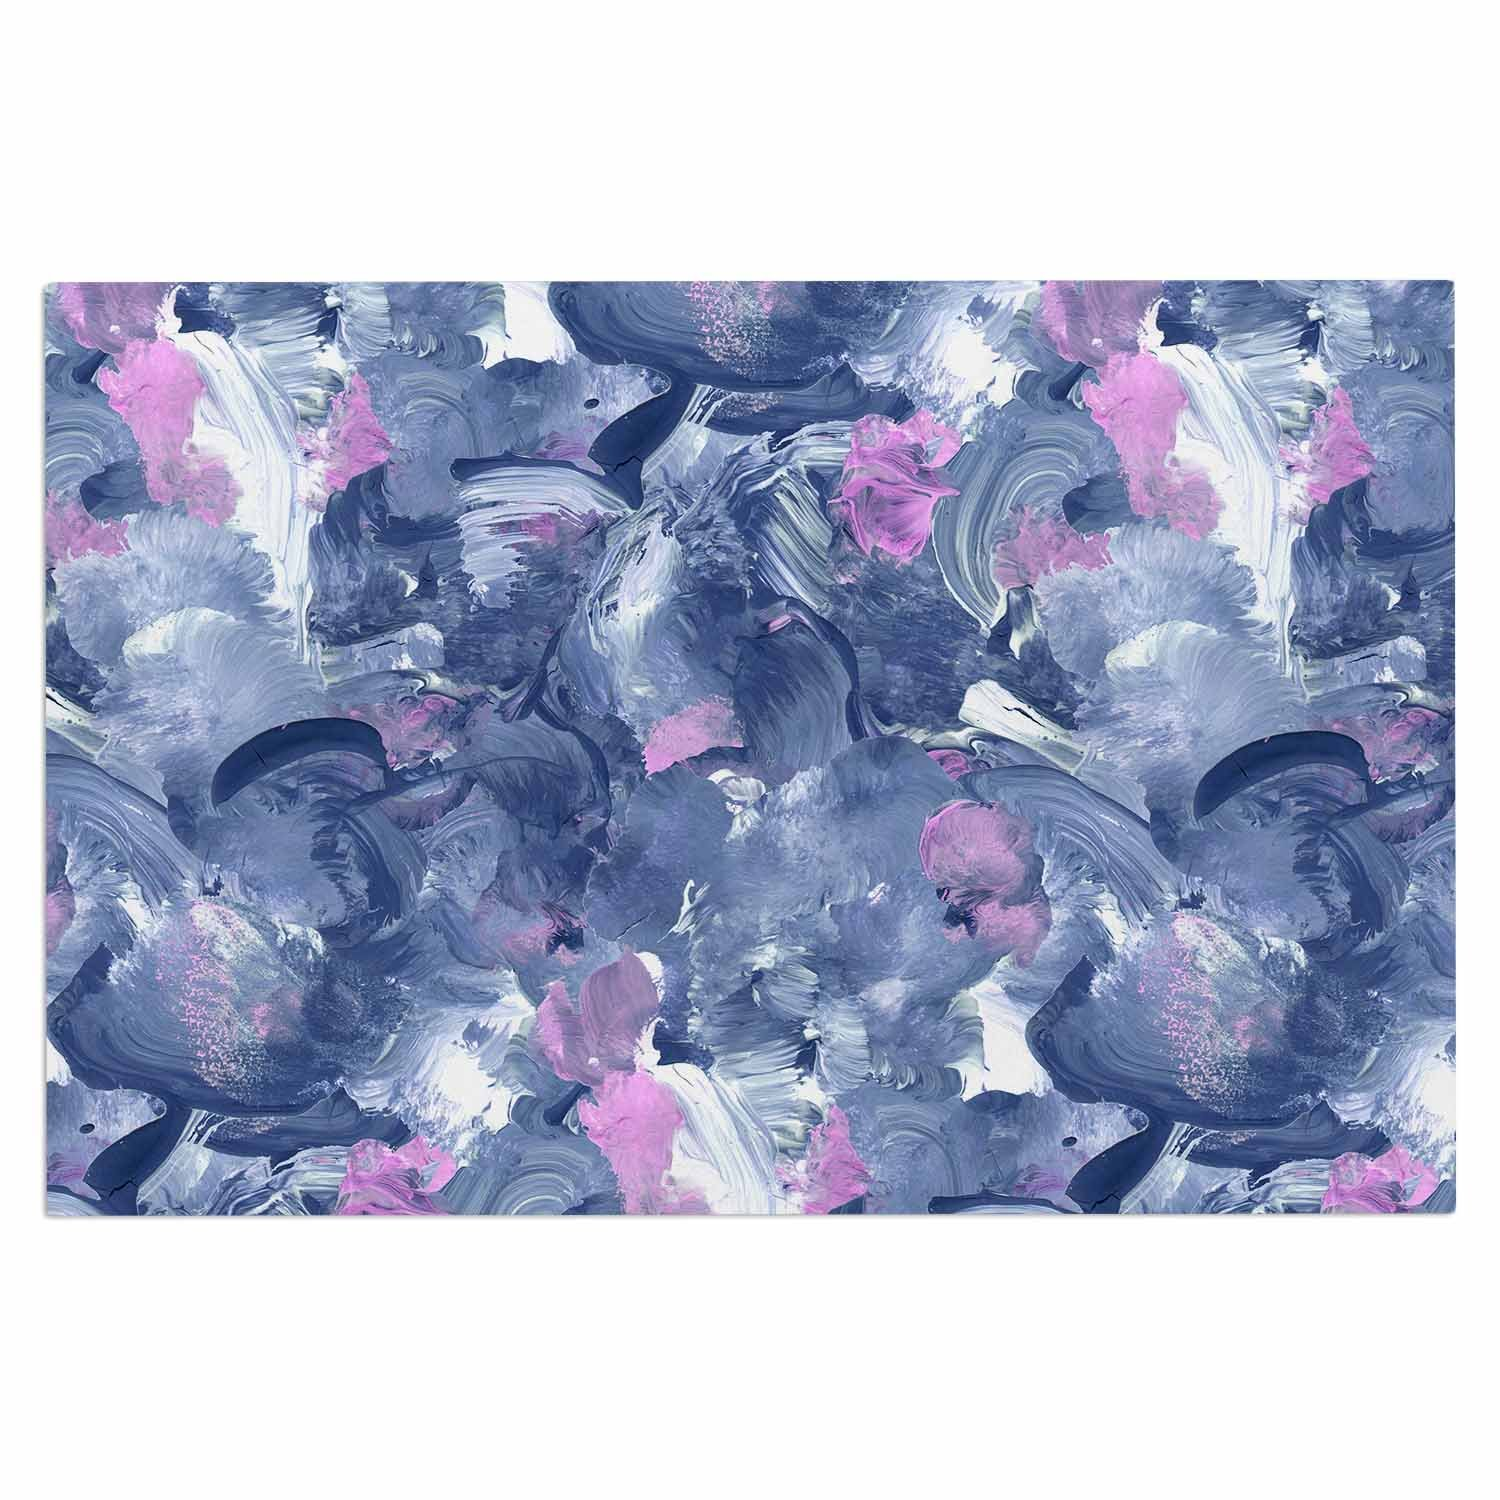 2 x 3 Floor Mat Kess InHouse Danii Pollehn Swirly Blue Pink Painting Decorative Door